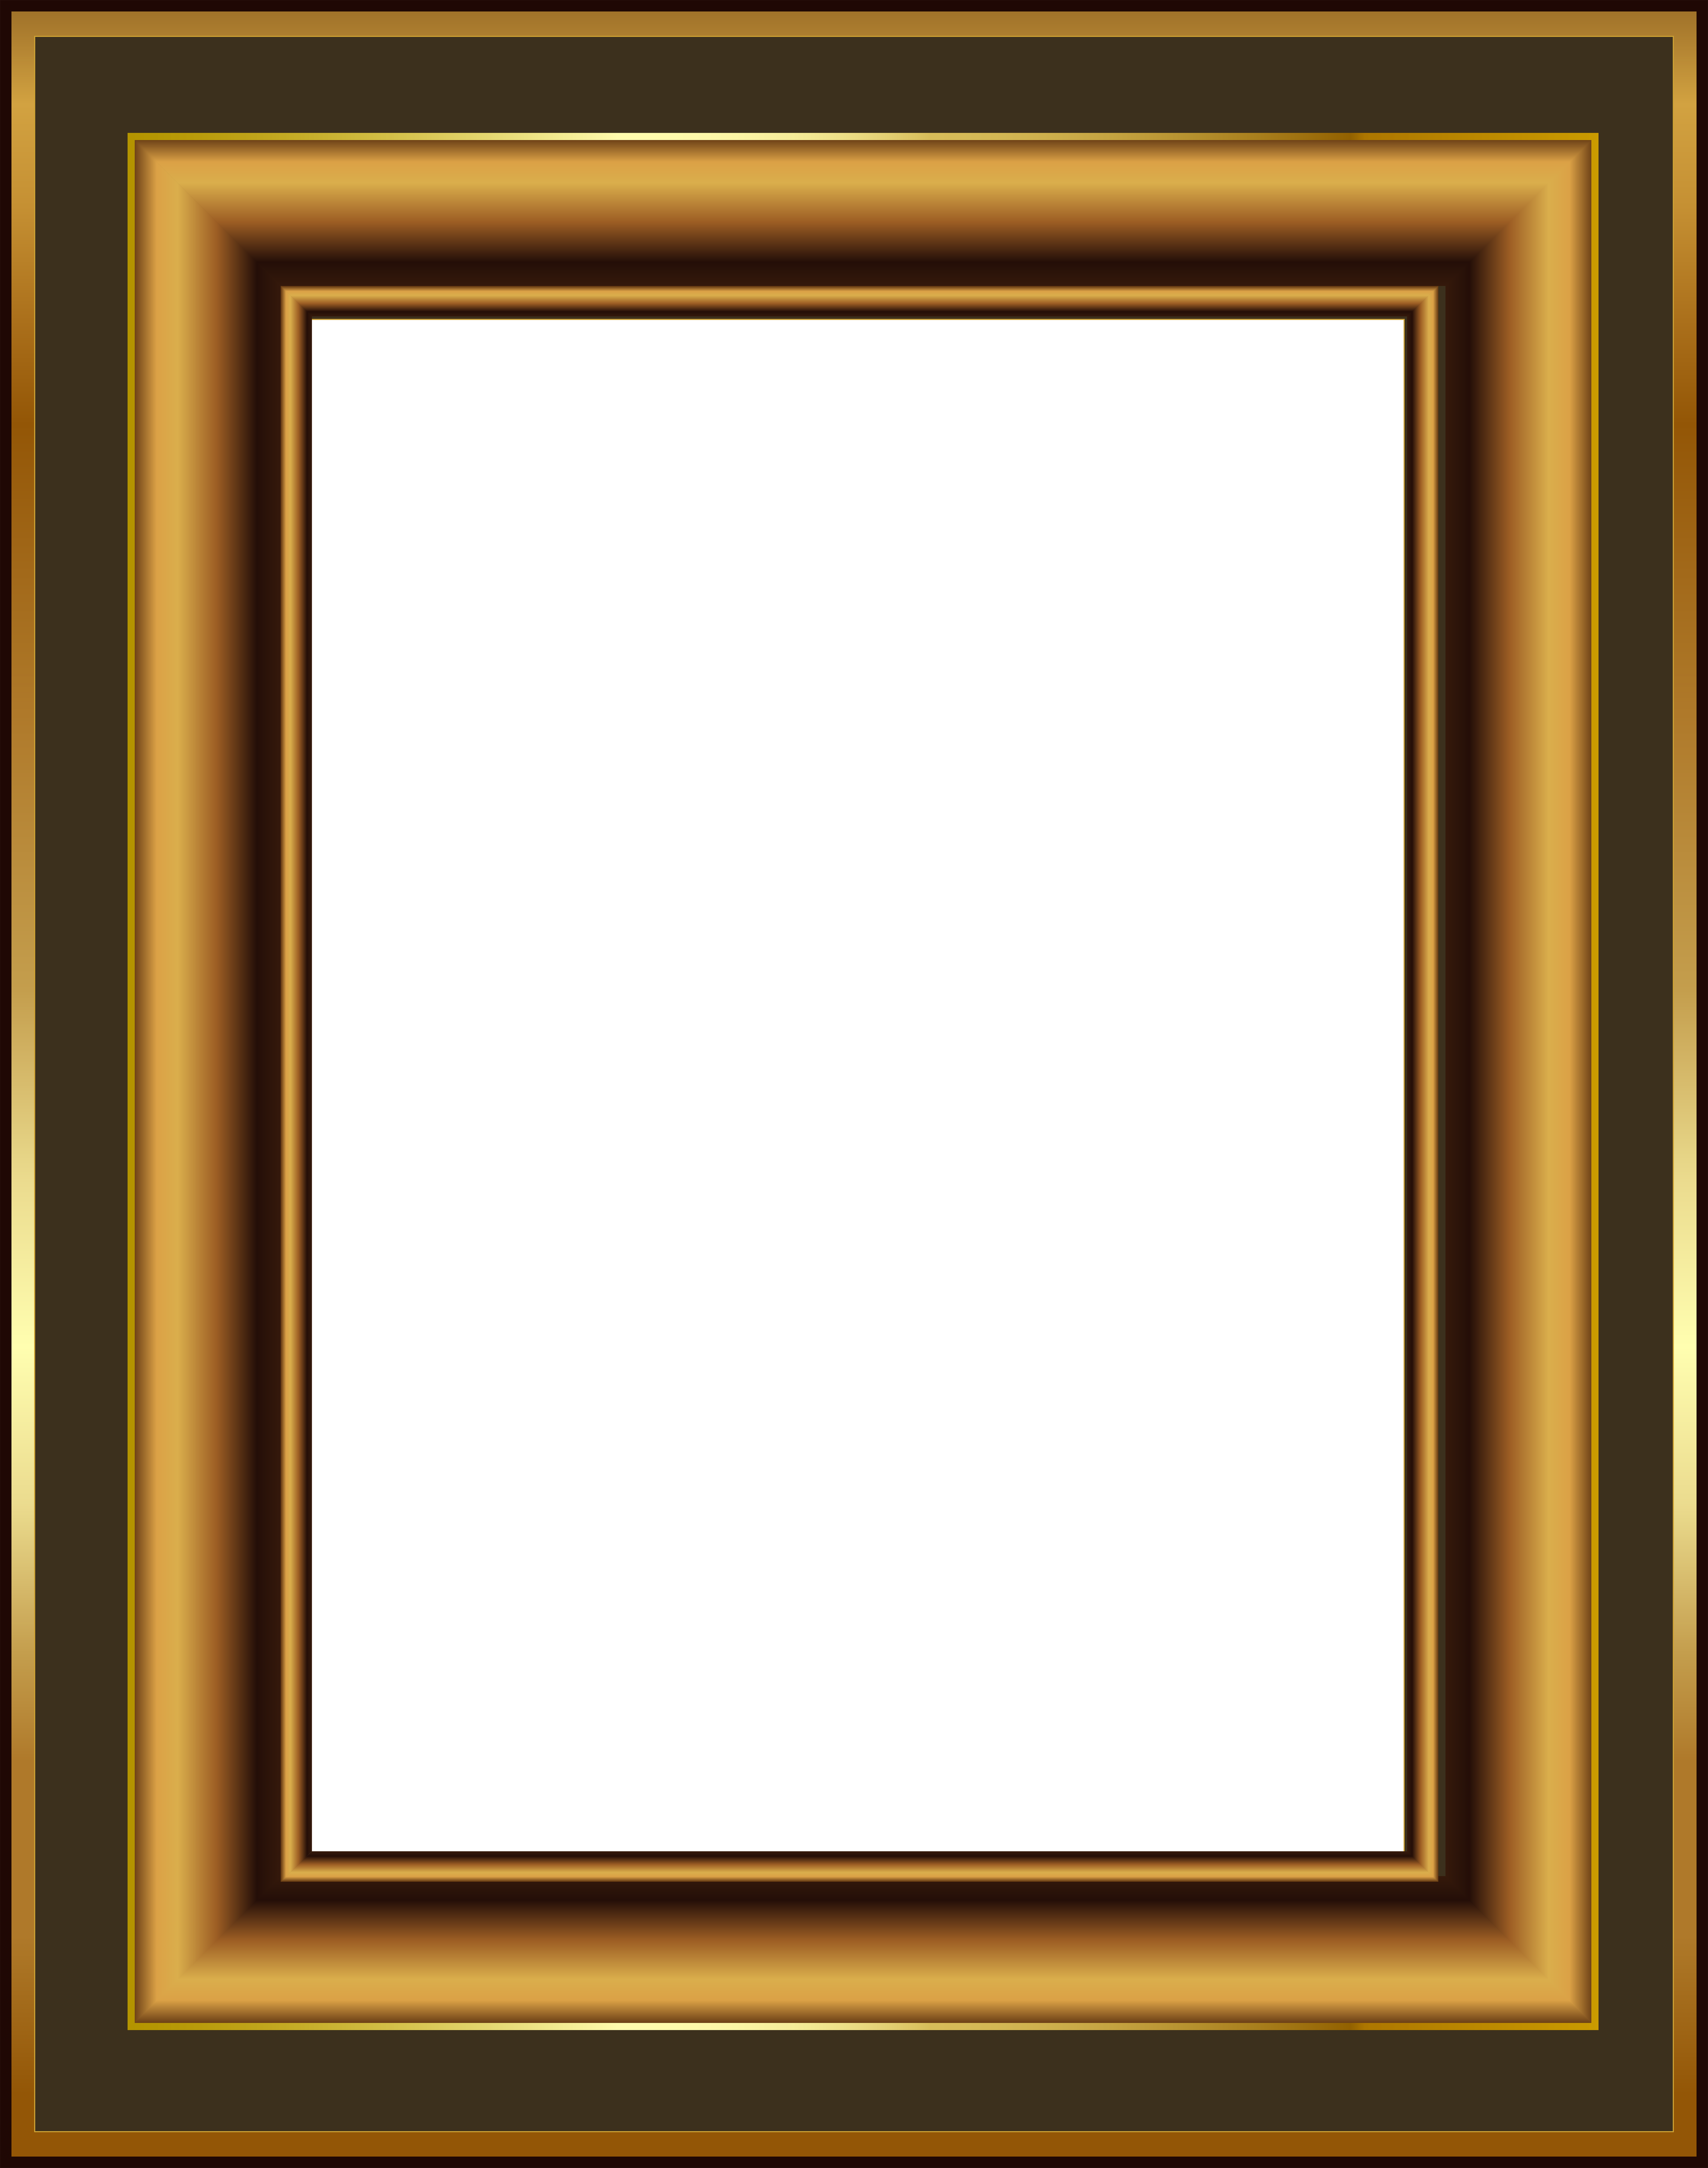 Png frame photo. Brown and gold classis